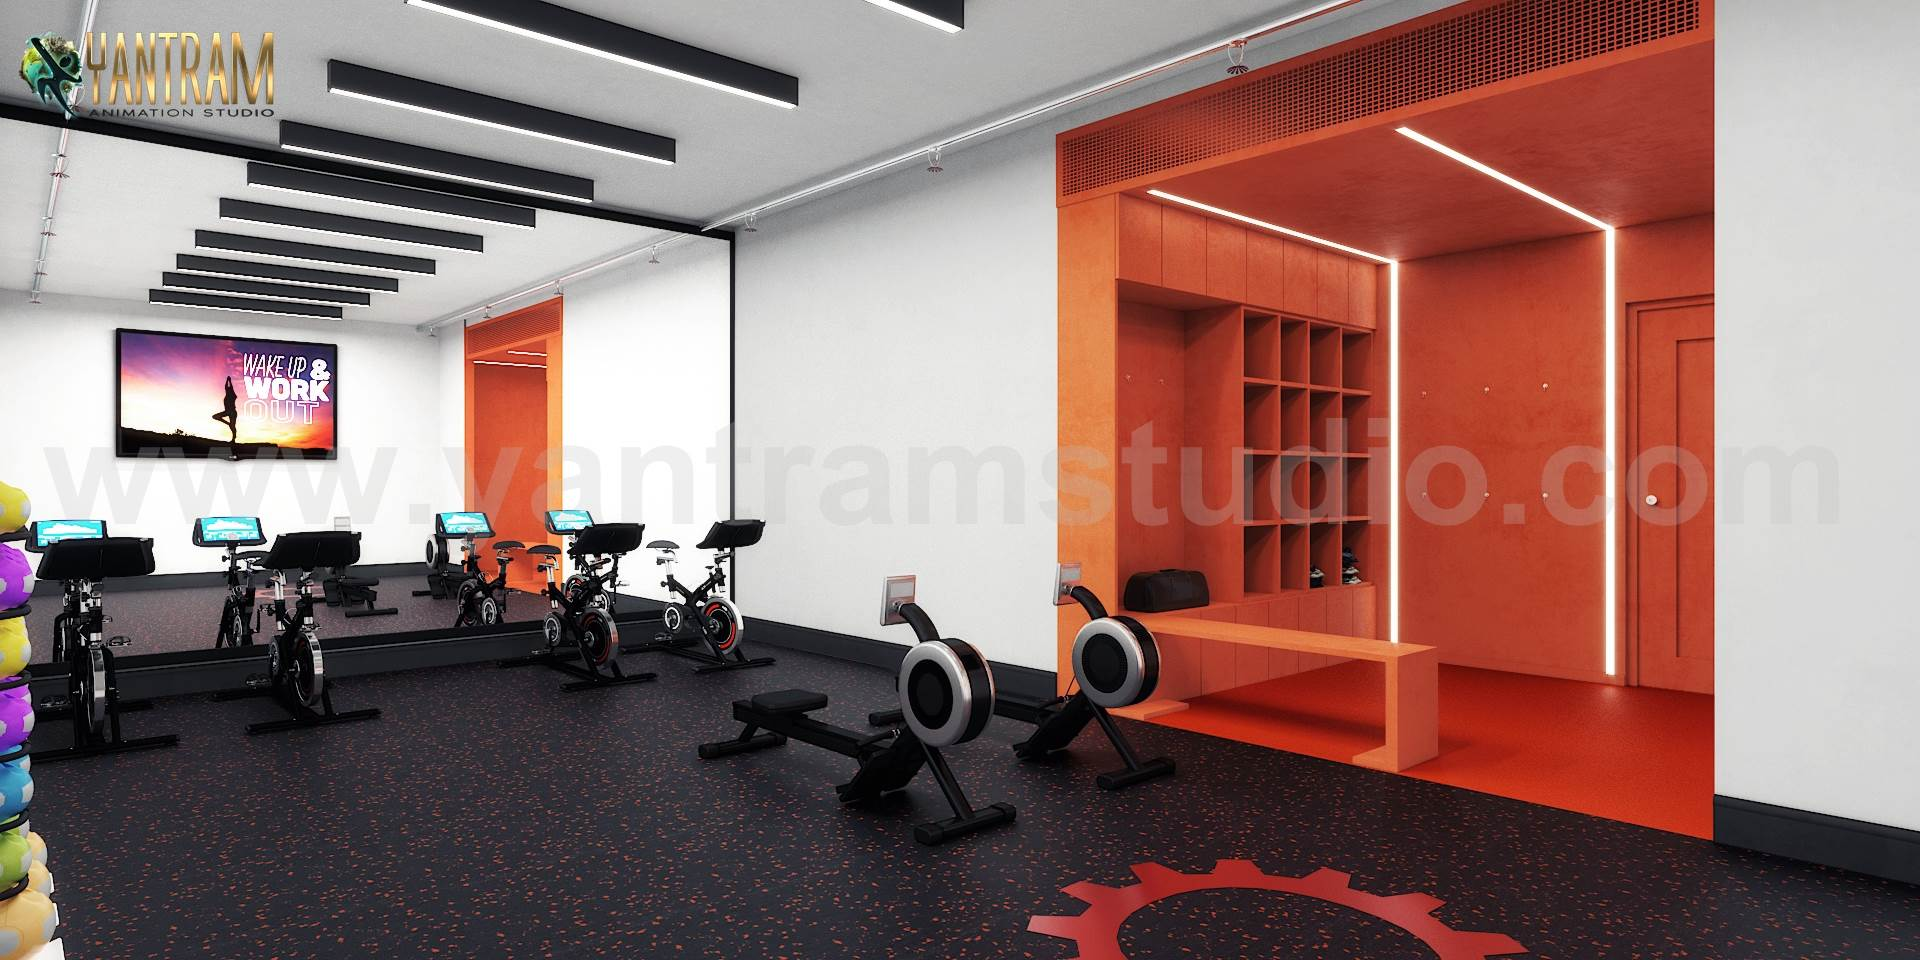 Commercial_Fitness_GYM_3D_Interior_Designers_Ideas_by_Architectural_Rendering_Companies.jpg -  by yantramstudio